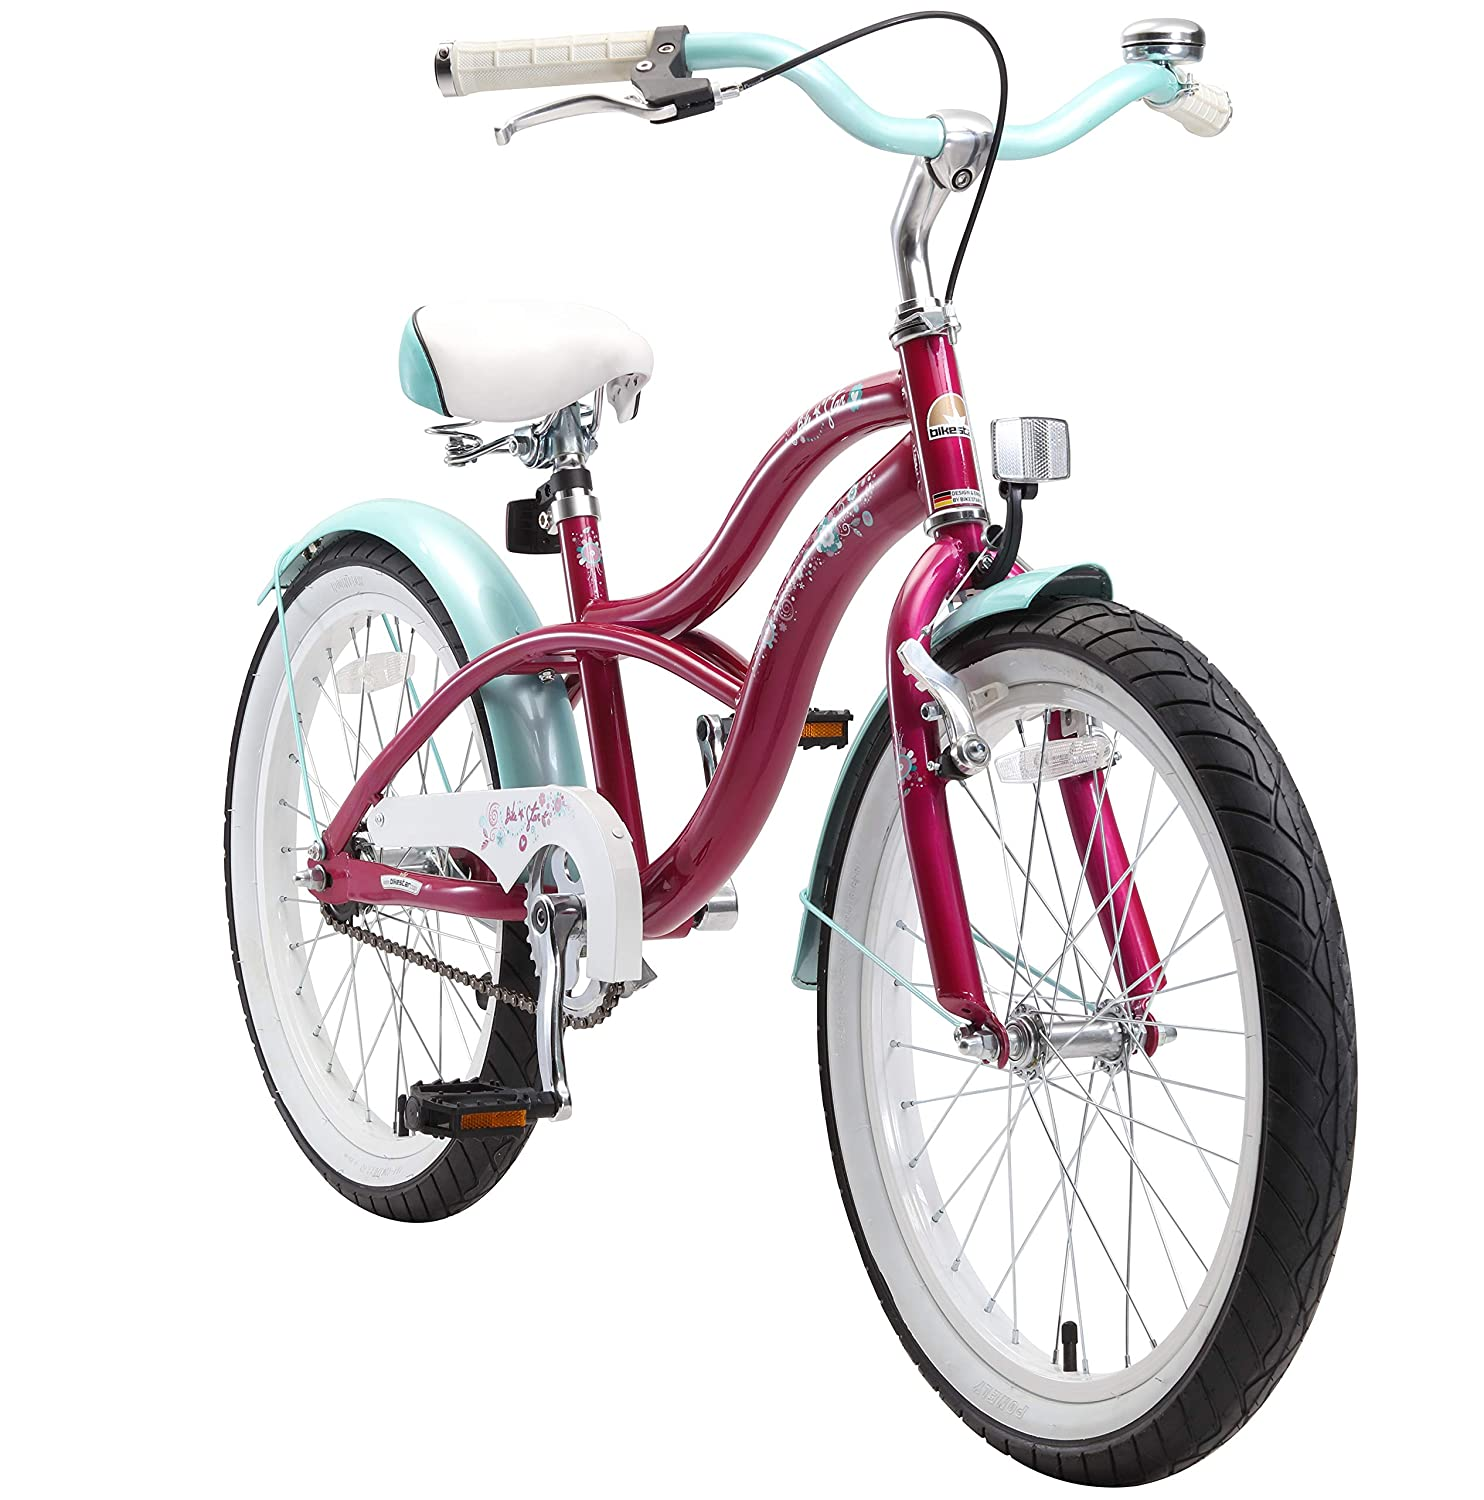 BIKESTAR Premium Safety Sport Kids Bike Bicycle with sidestand and accessories for age 6 year old children 20 Inch Cruiser Edition for girls